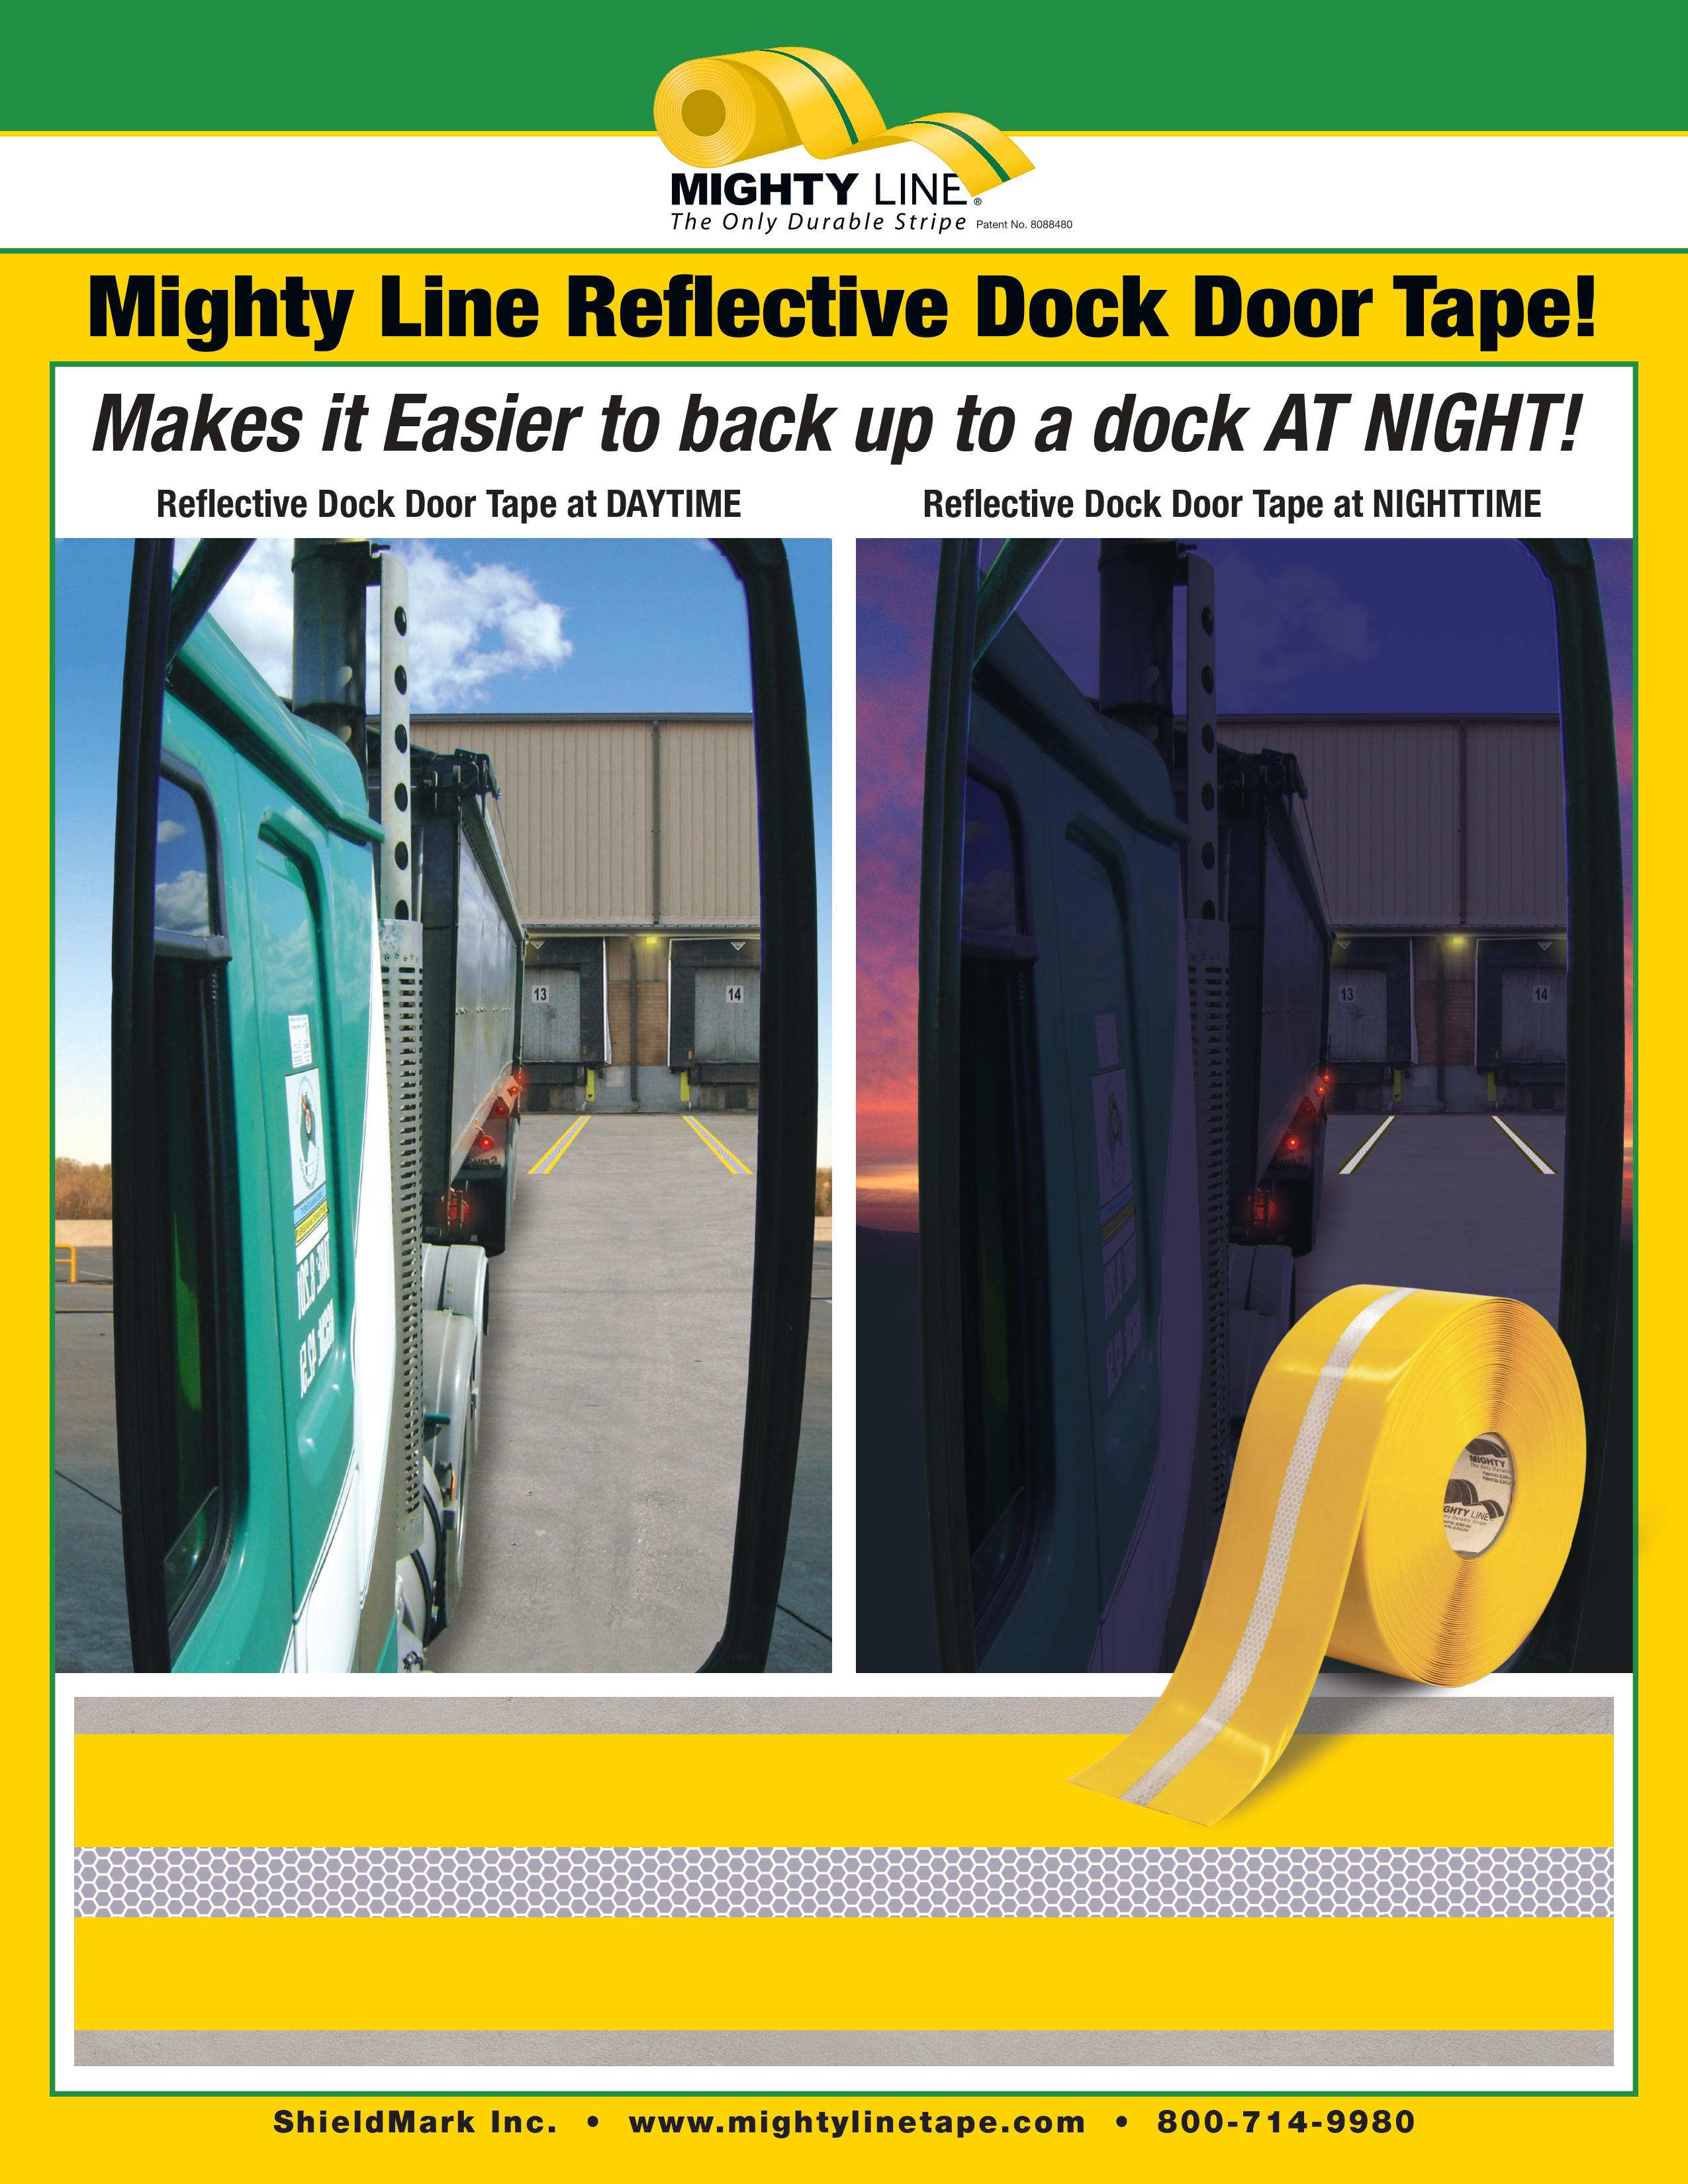 New Mighty Line Reflective Center Line Floor Tape